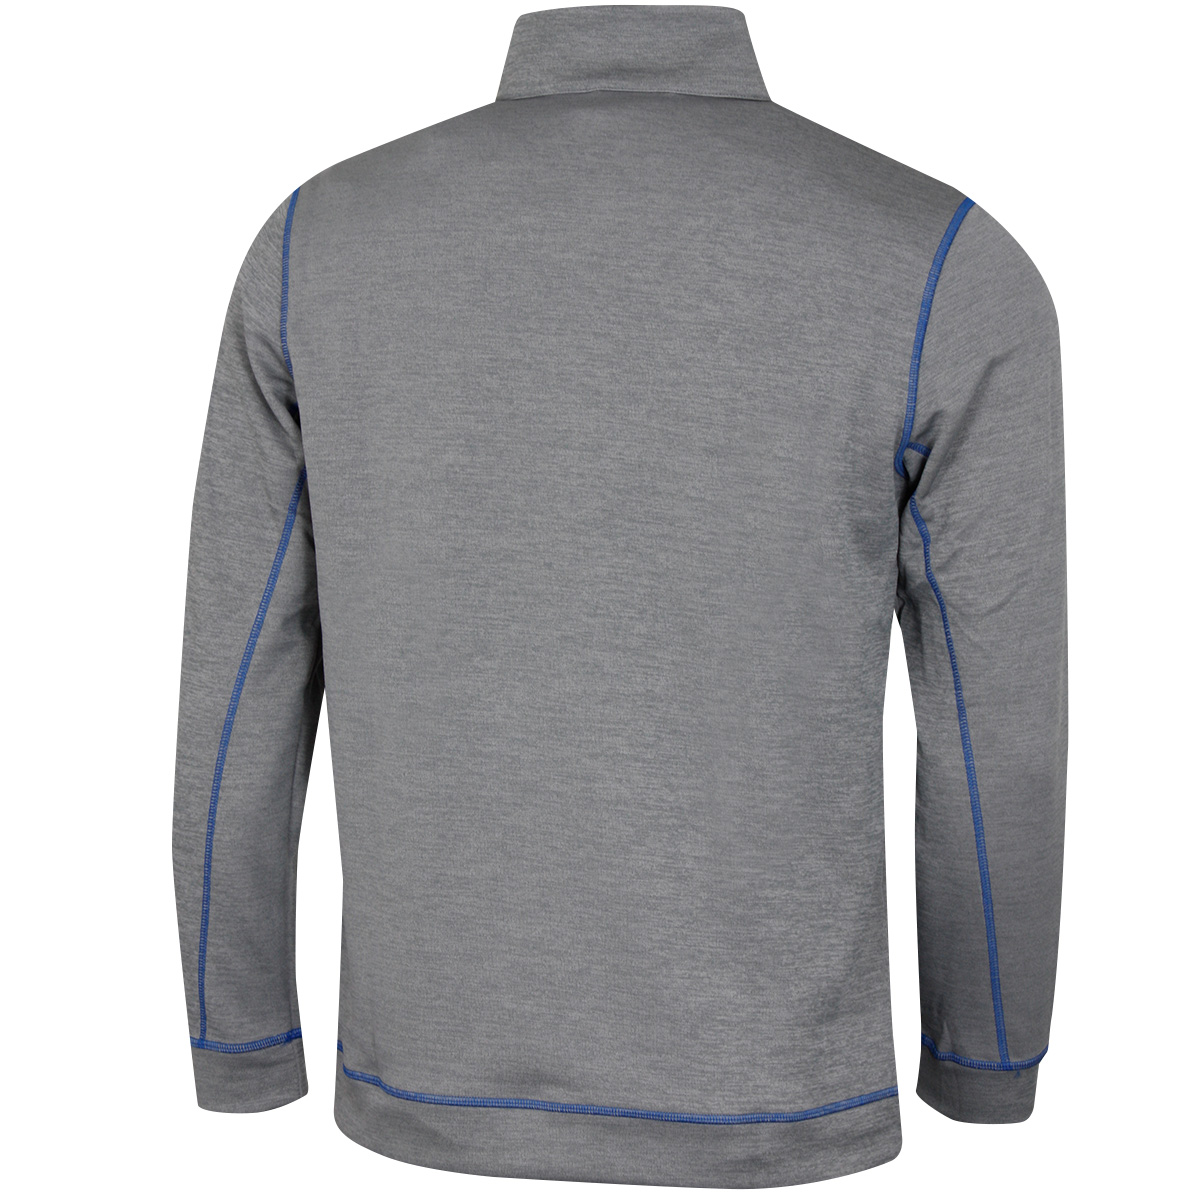 Puma-Golf-Mens-Go-Low-1-4-Zip-DryCell-Wicking-Chest-Pocket-Sweater-48-OFF-RRP thumbnail 7